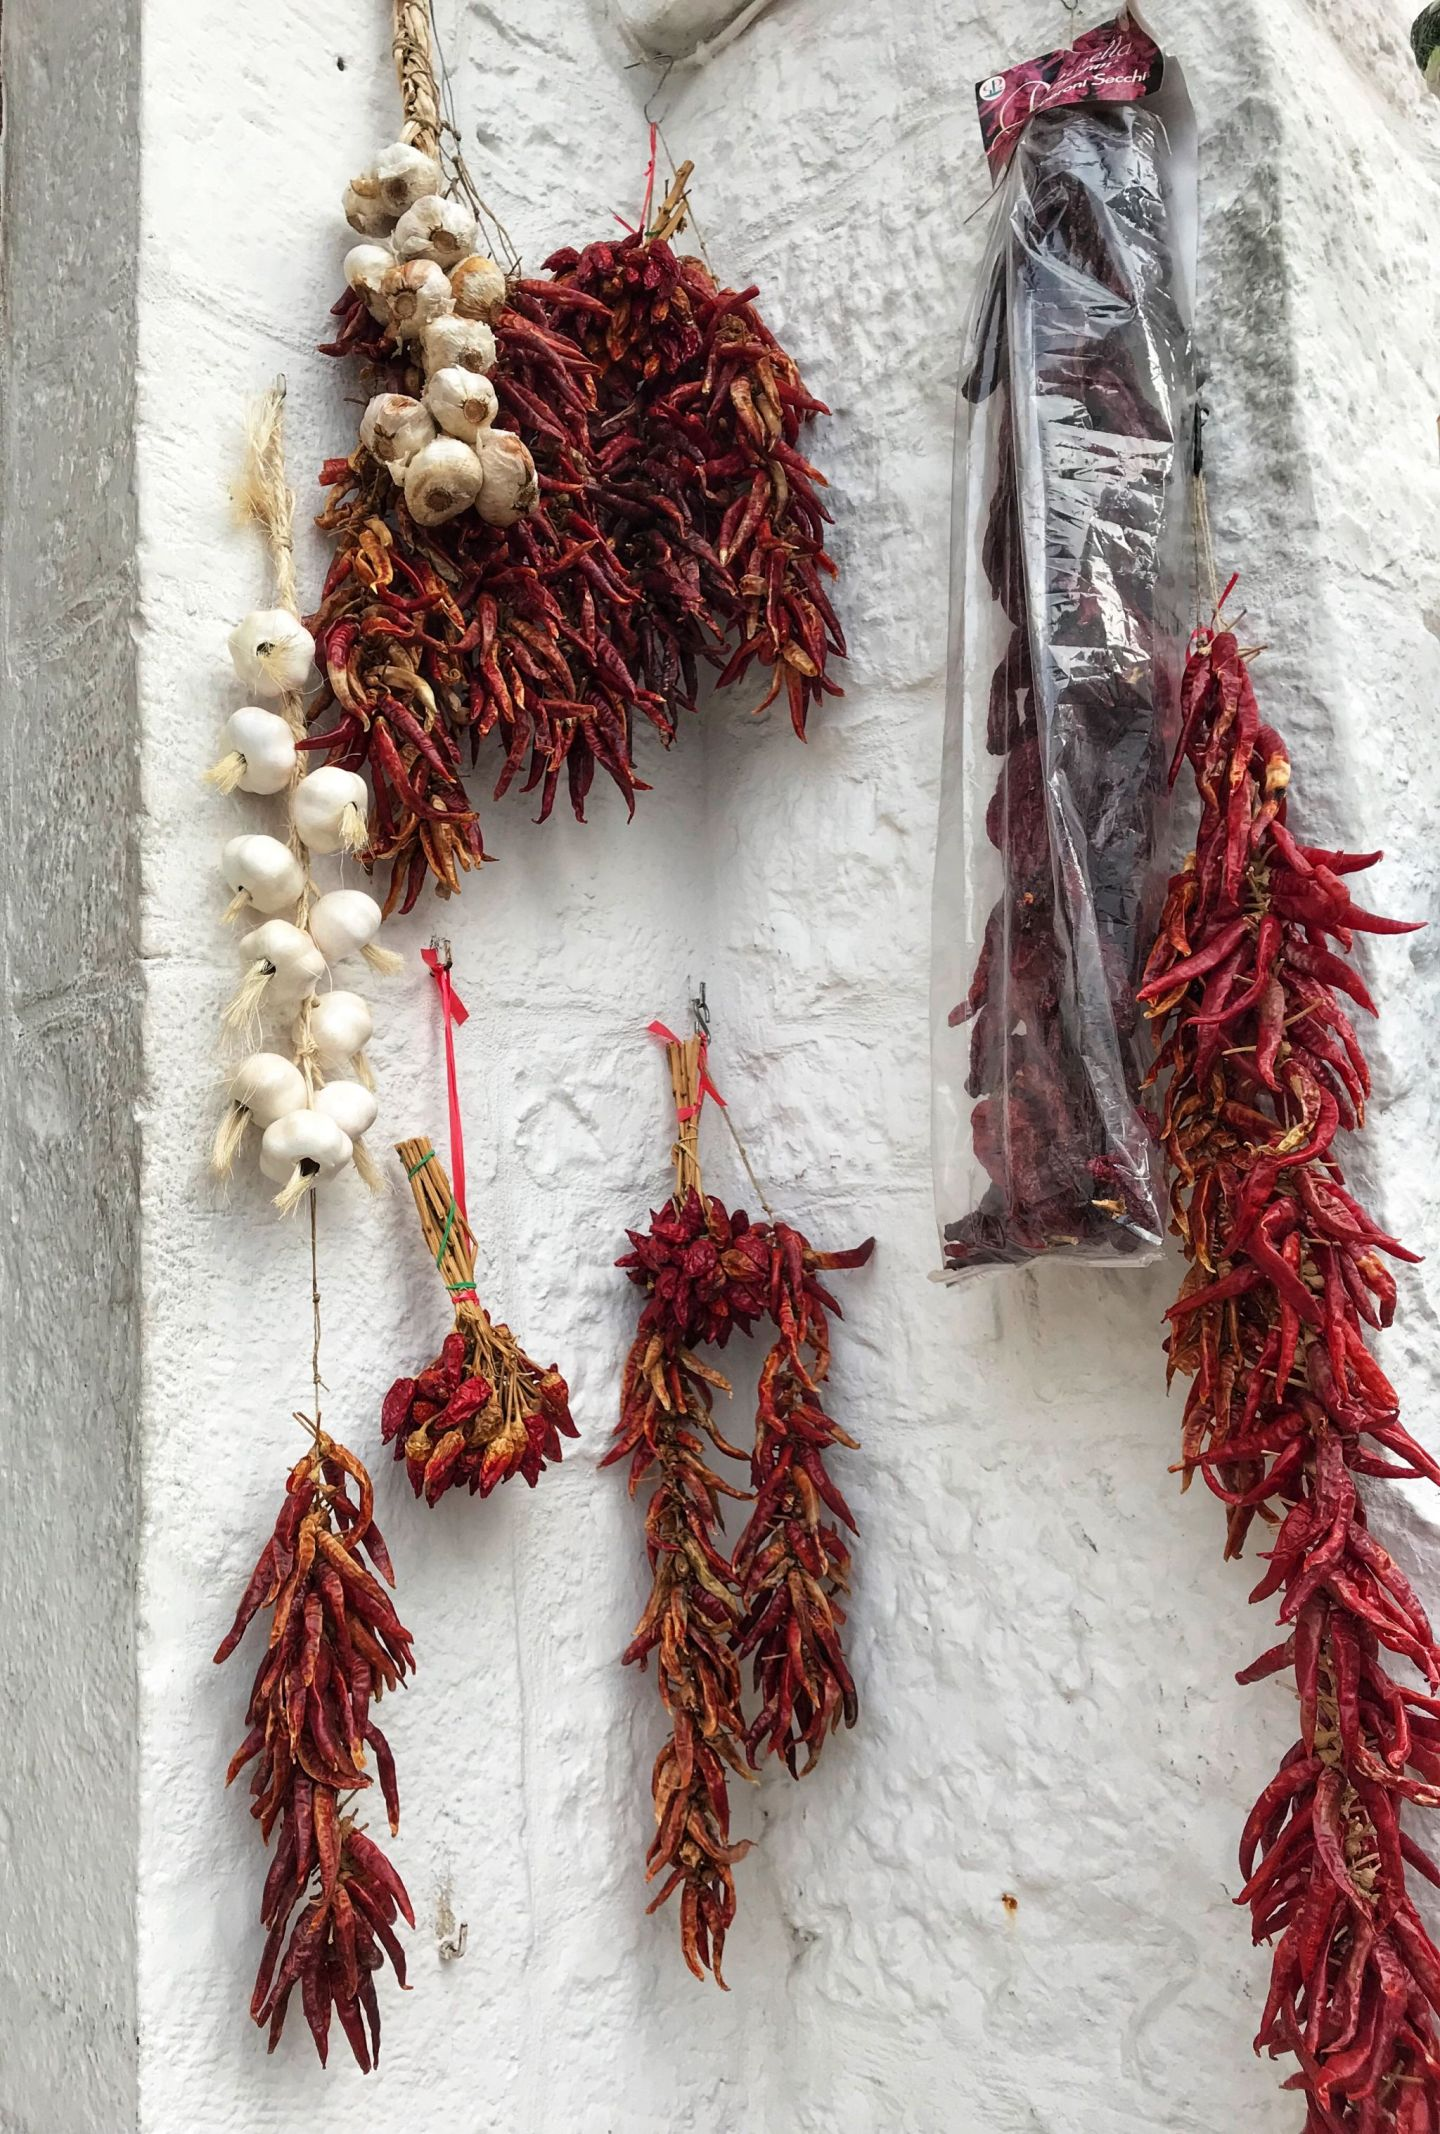 Chillis and garlic hanging from the walls in Alberobello